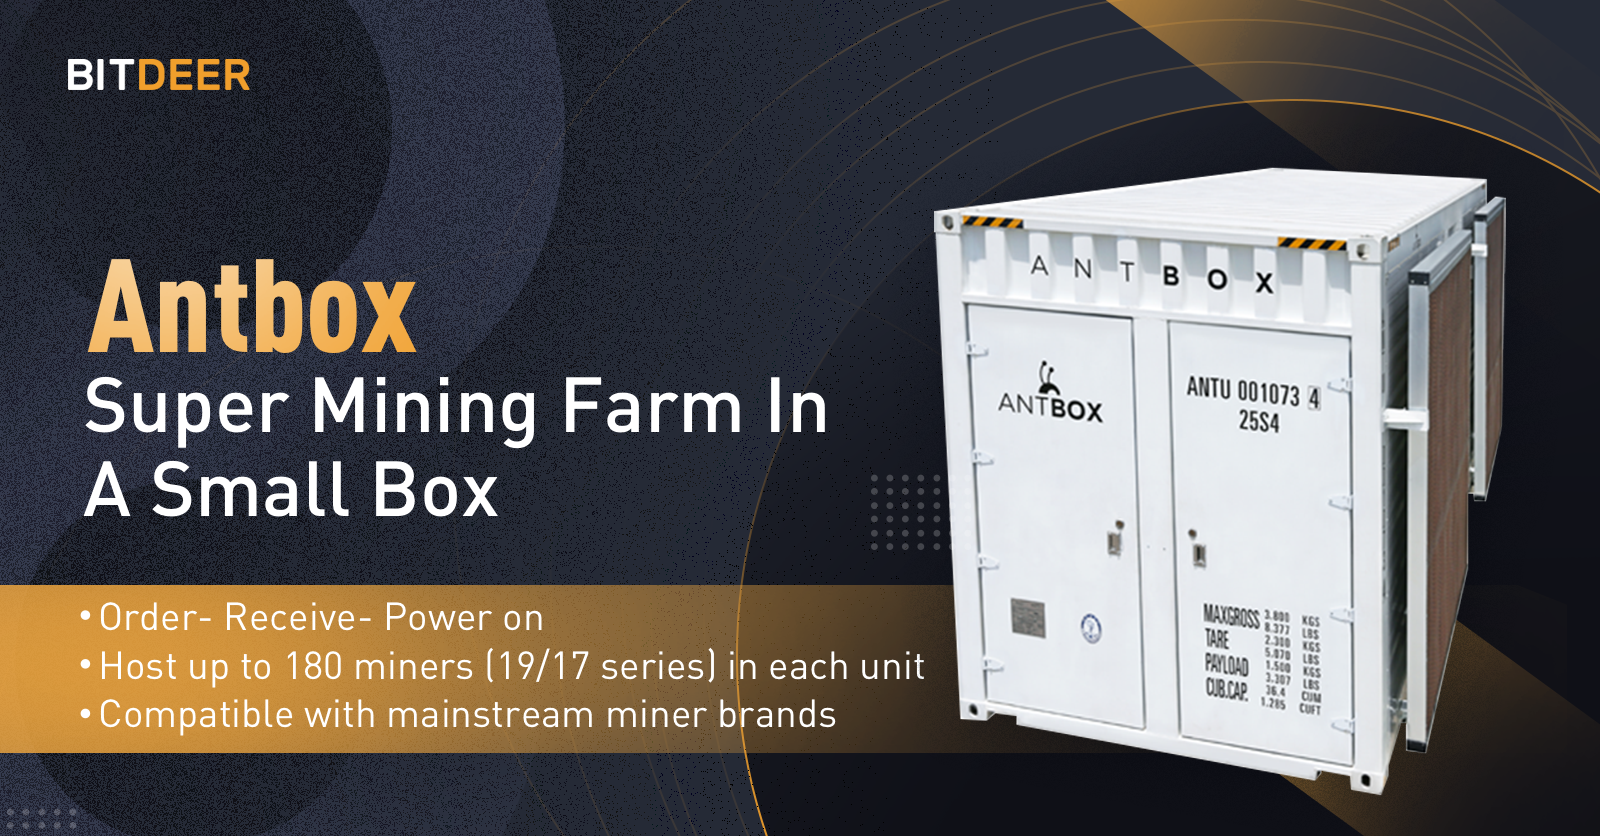 Bitdeer Introduces Antbox, an Integrated Mobile Mining Farm